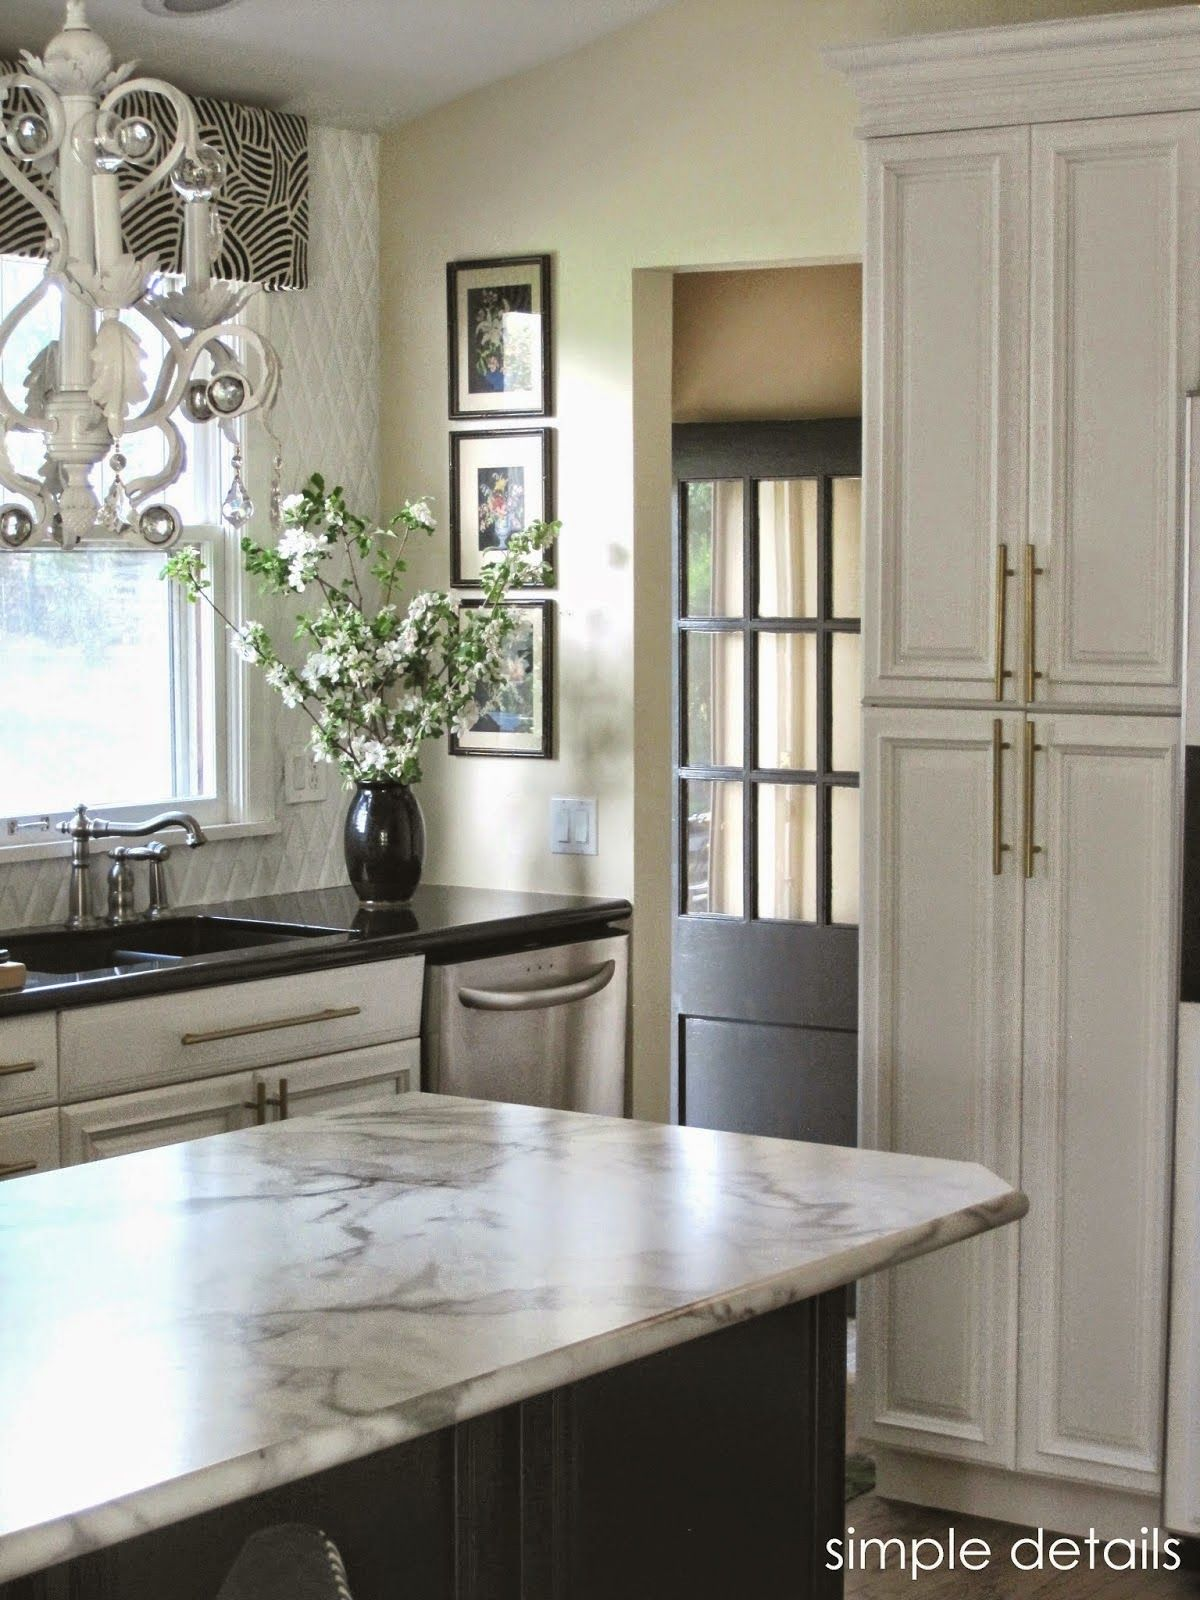 Formica Calacatta Marble Review What Sealed The Deal Was Availability Of Idealedge It Mimics Decorative Ogee And Bullnose Profiles Found On